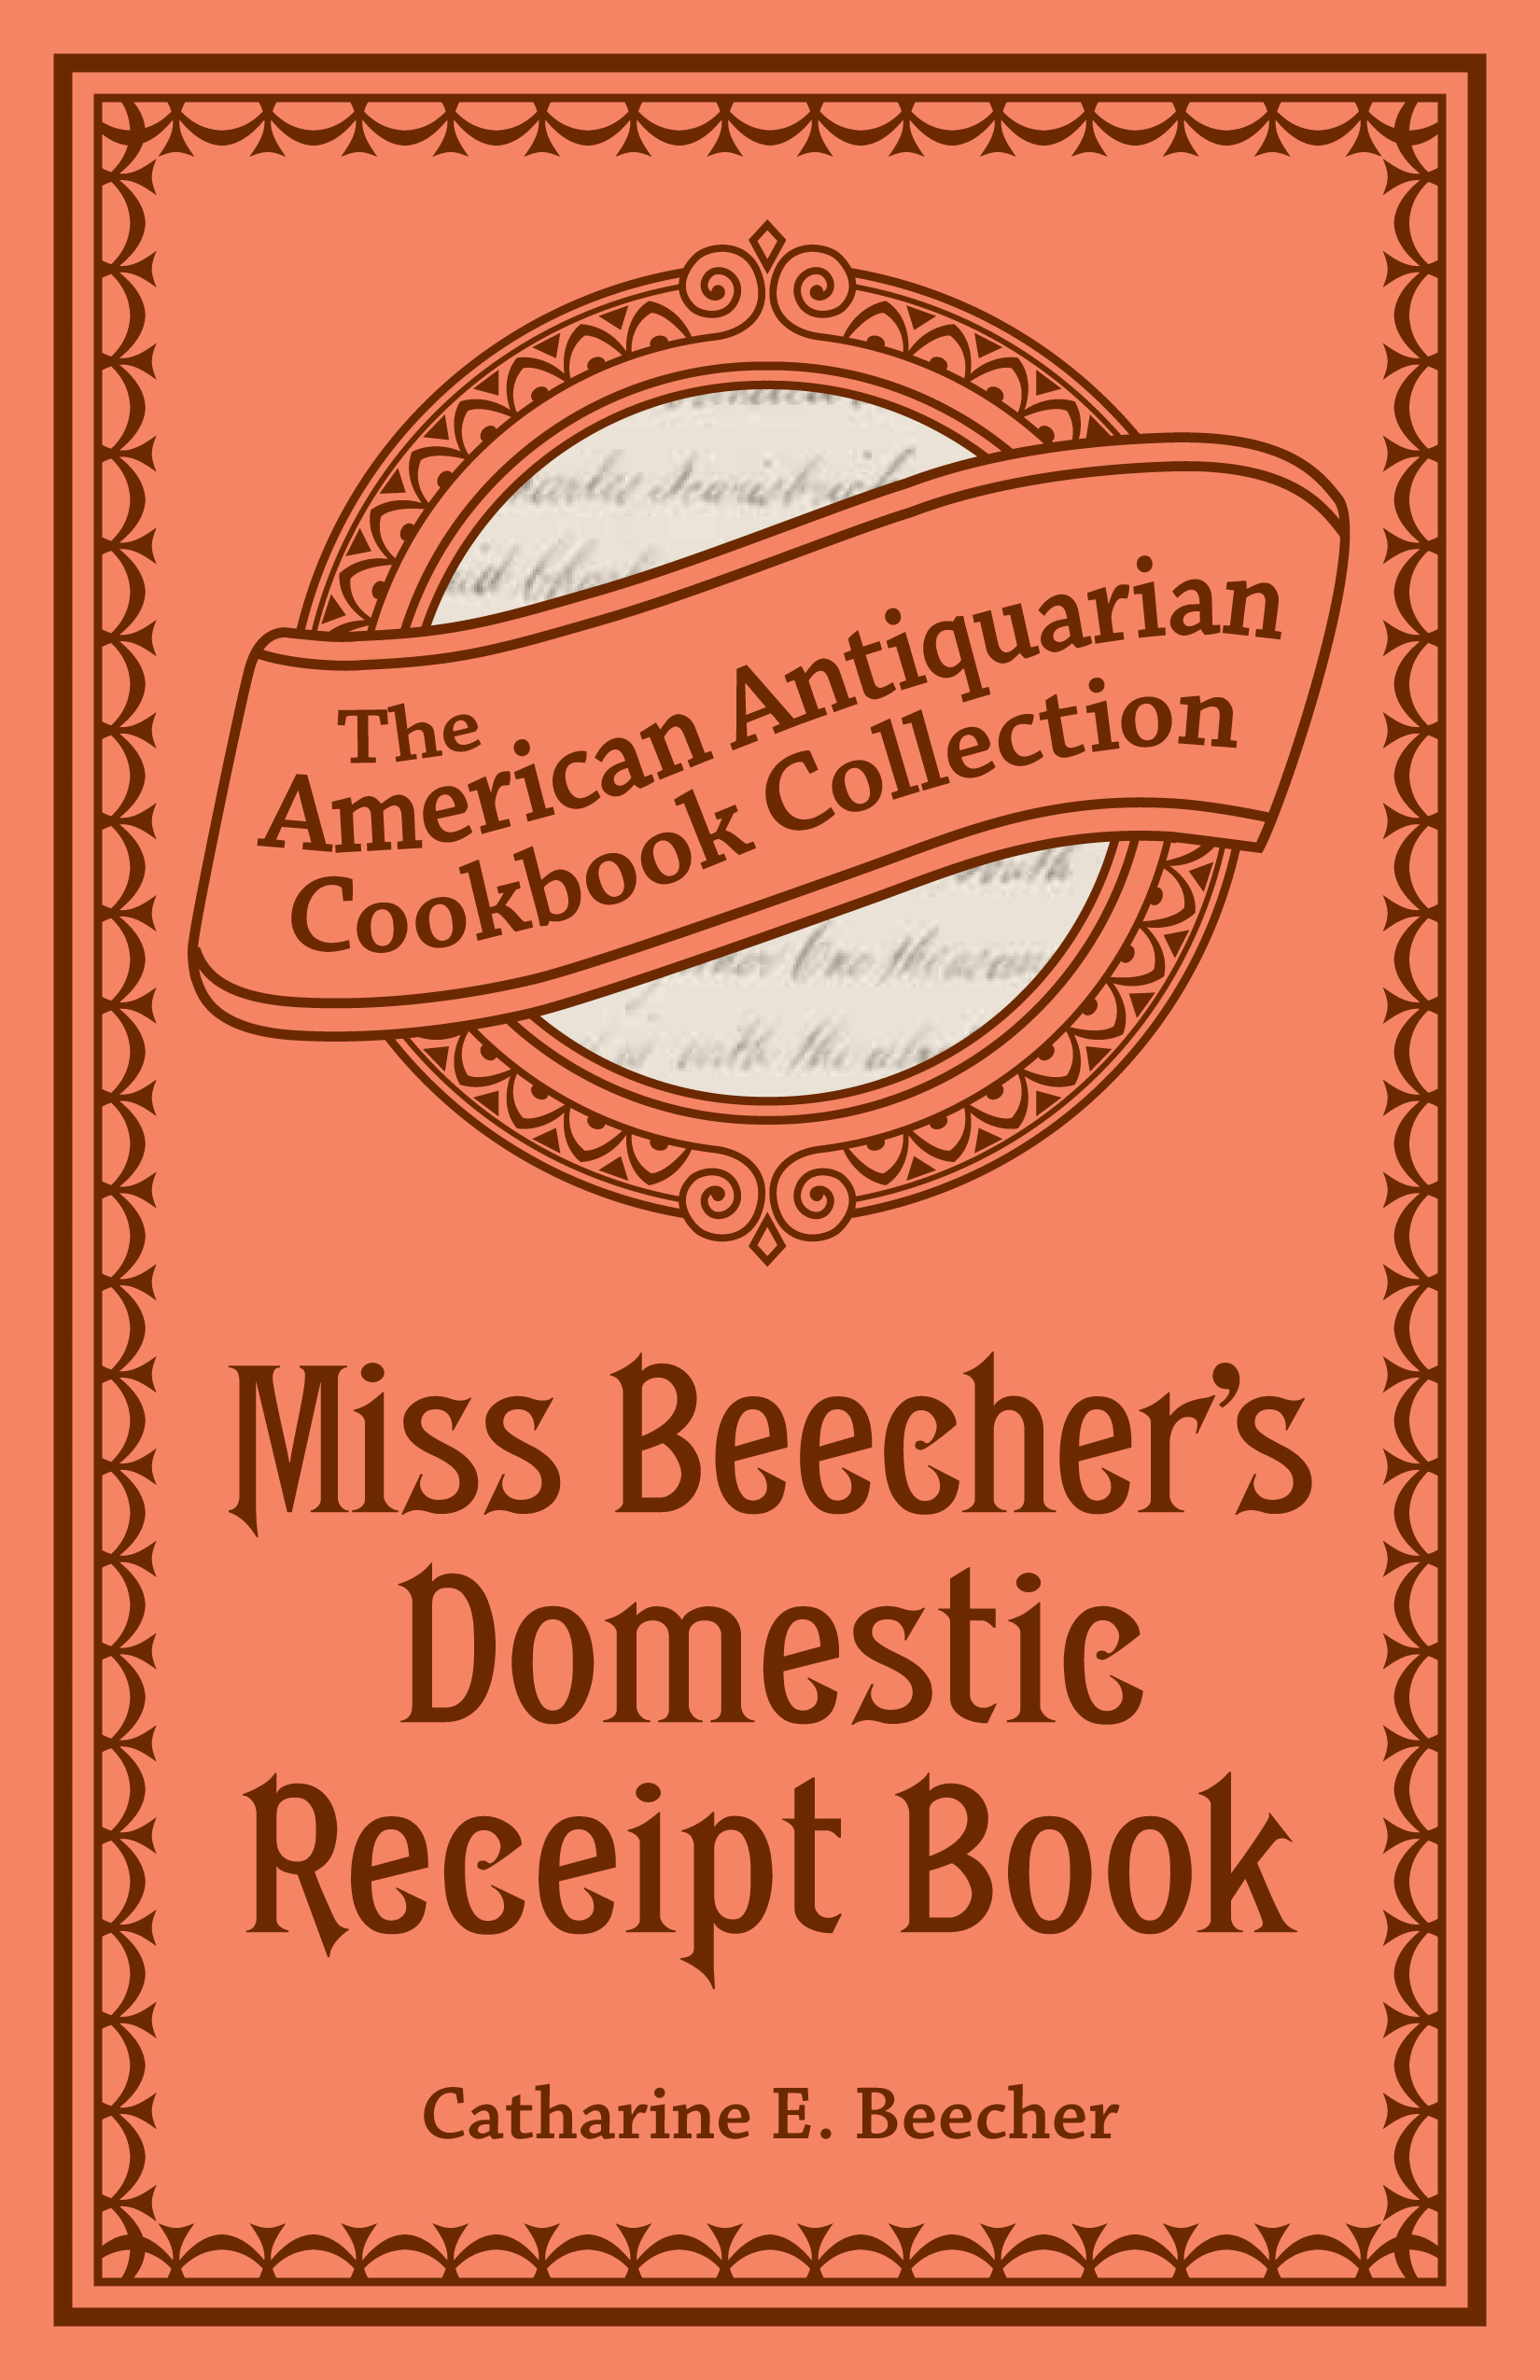 Miss Beecher's Domestic Receipt Book